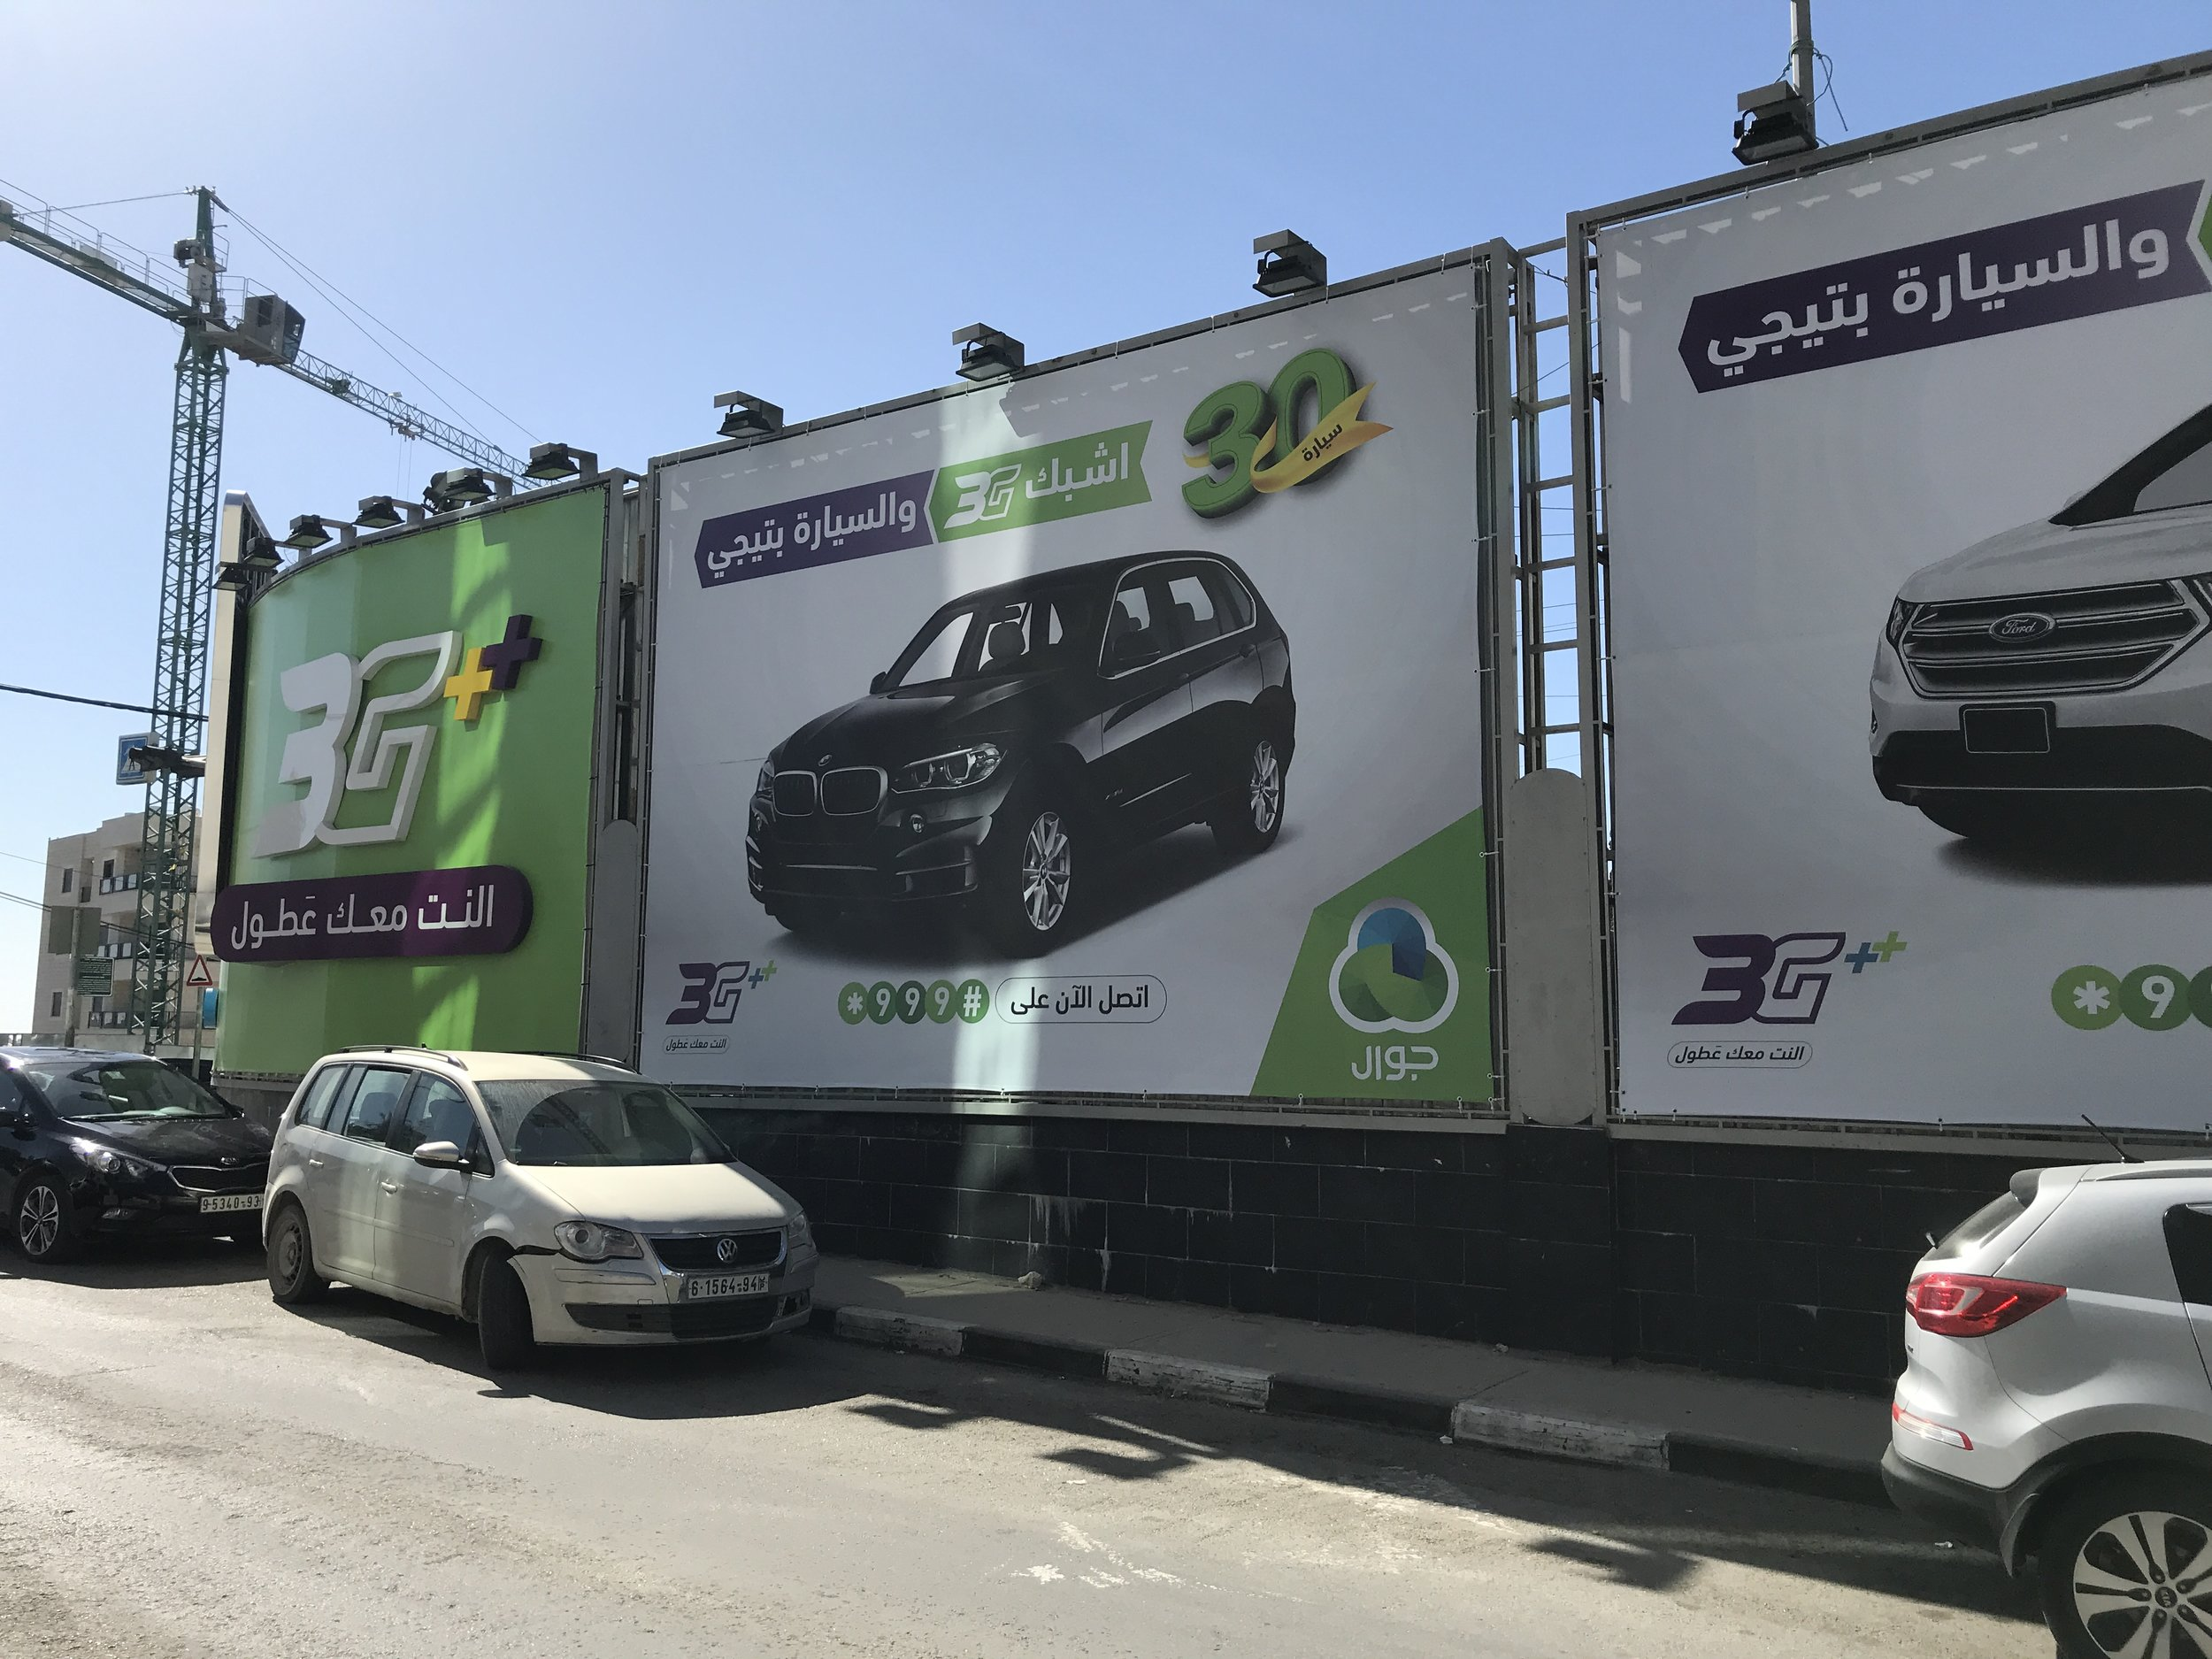 Sign up for 3G, win a car.